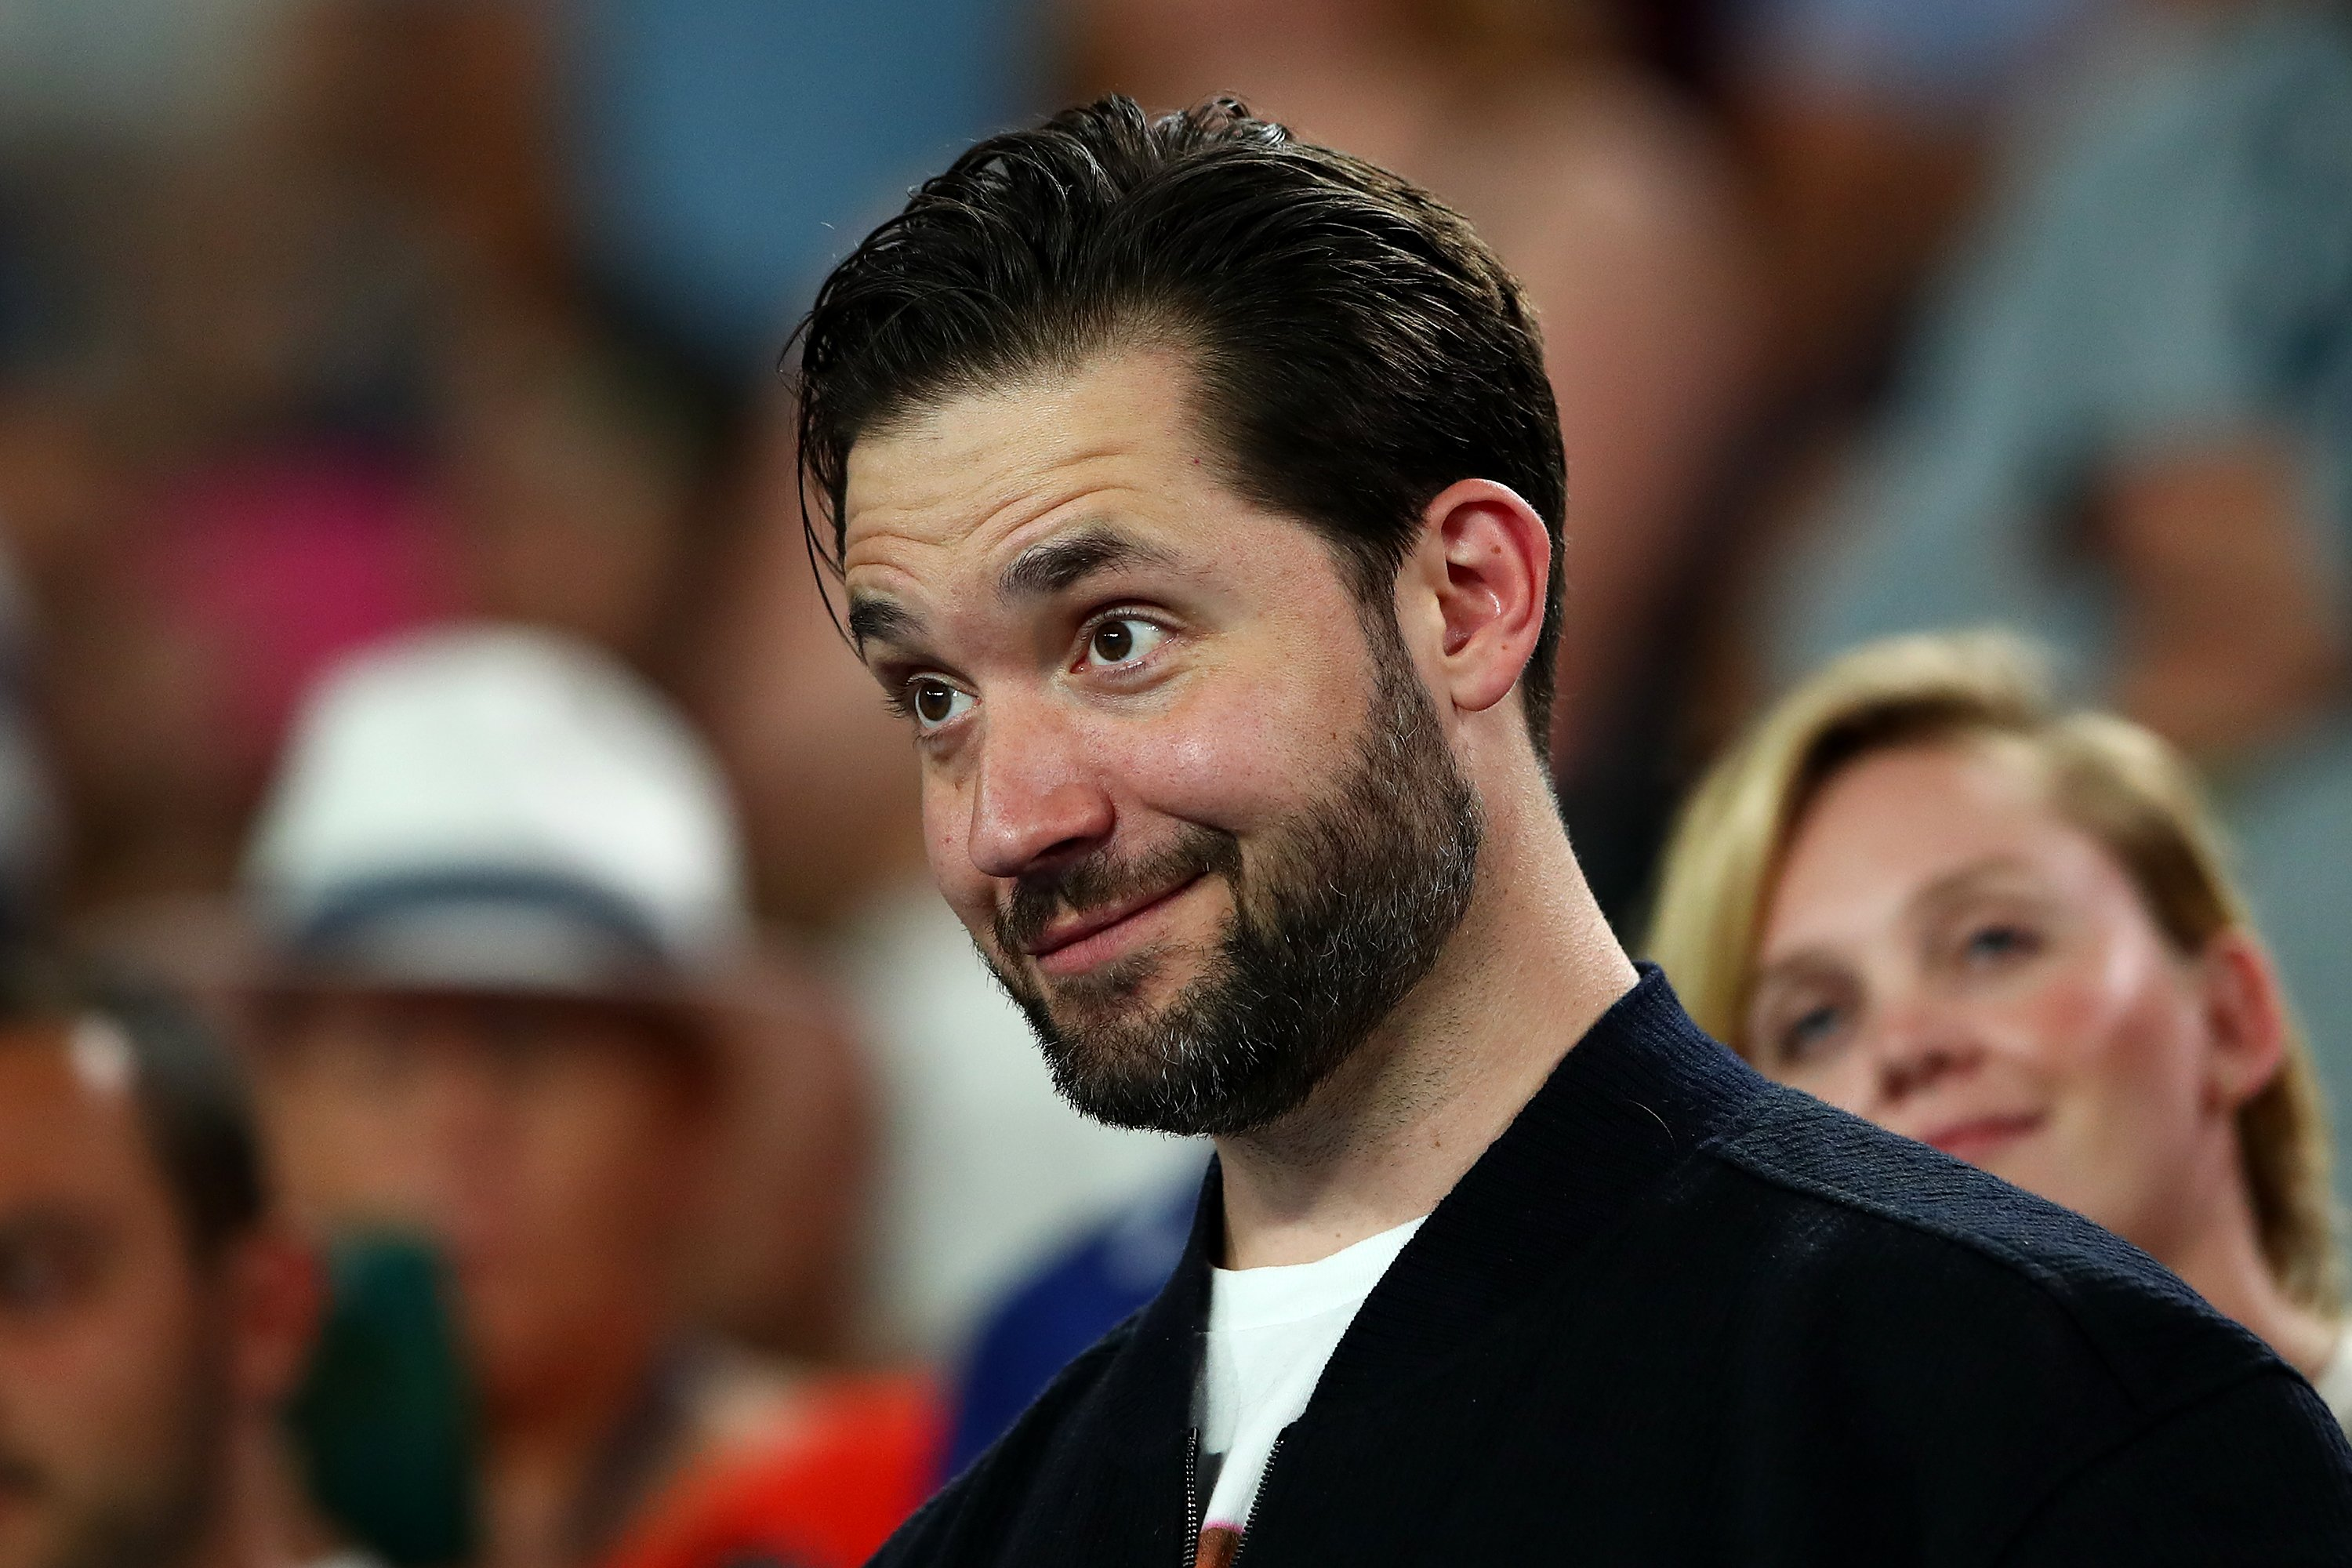 Alexis Ohanian at the Australian Open at Melbourne Park on January 17, 2019 | Photo: GettyImages